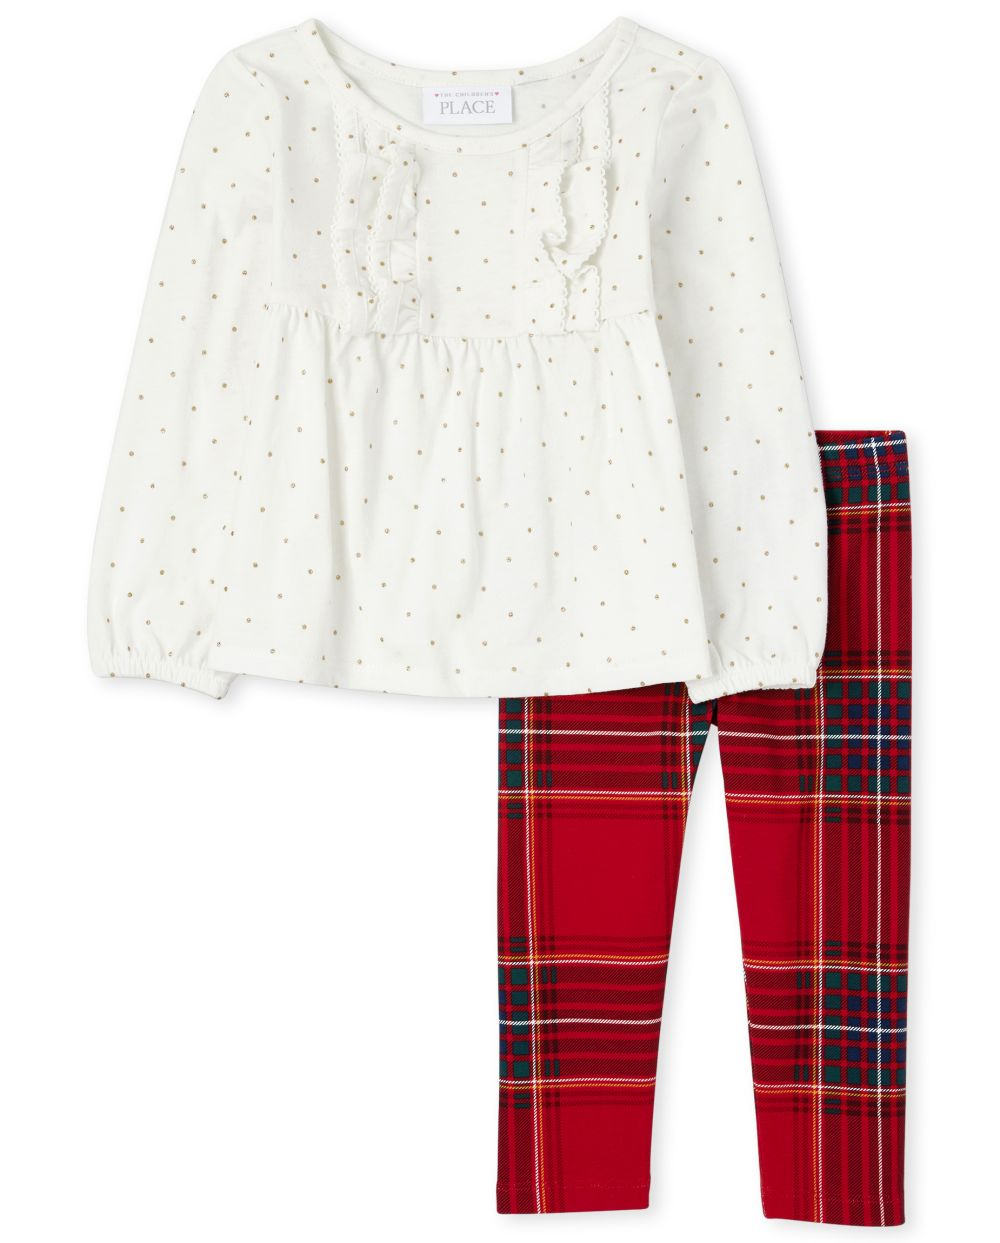 Toddler Girls Ruffle And Plaid Outfit Set